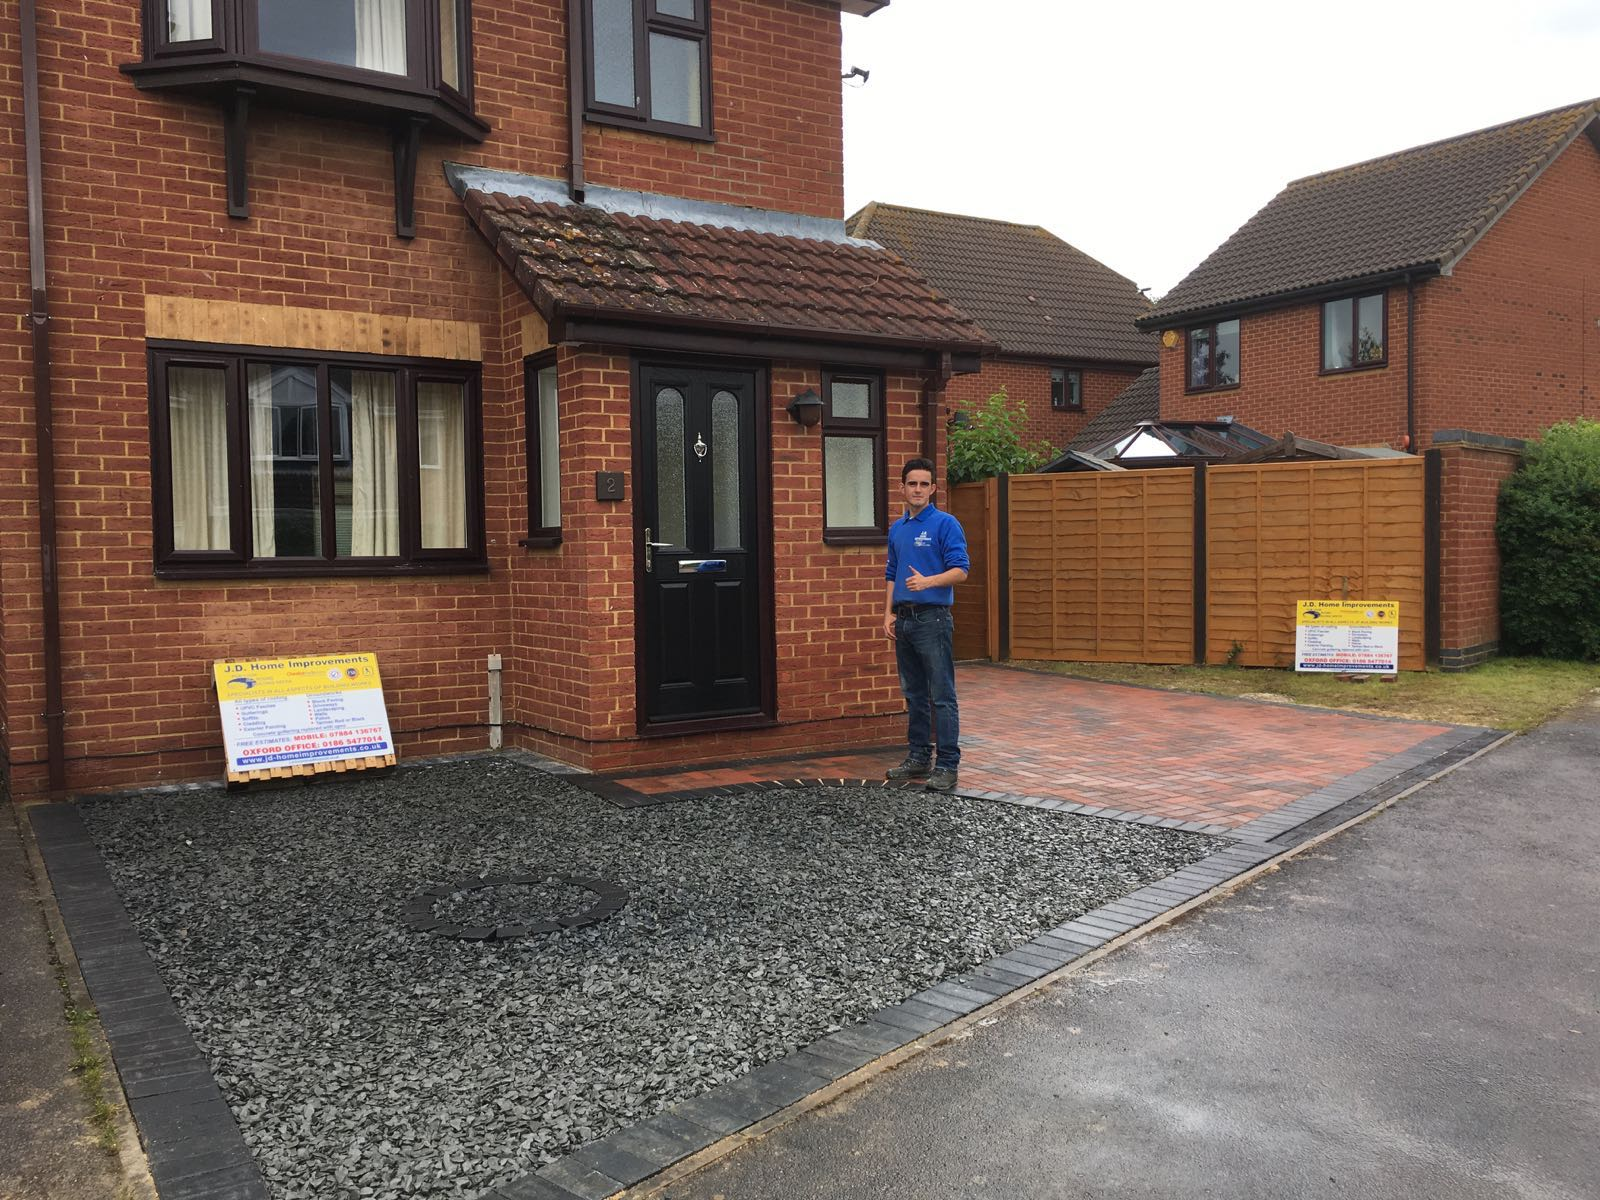 recent project for driveways in Yatton - image shows a block paving driveway